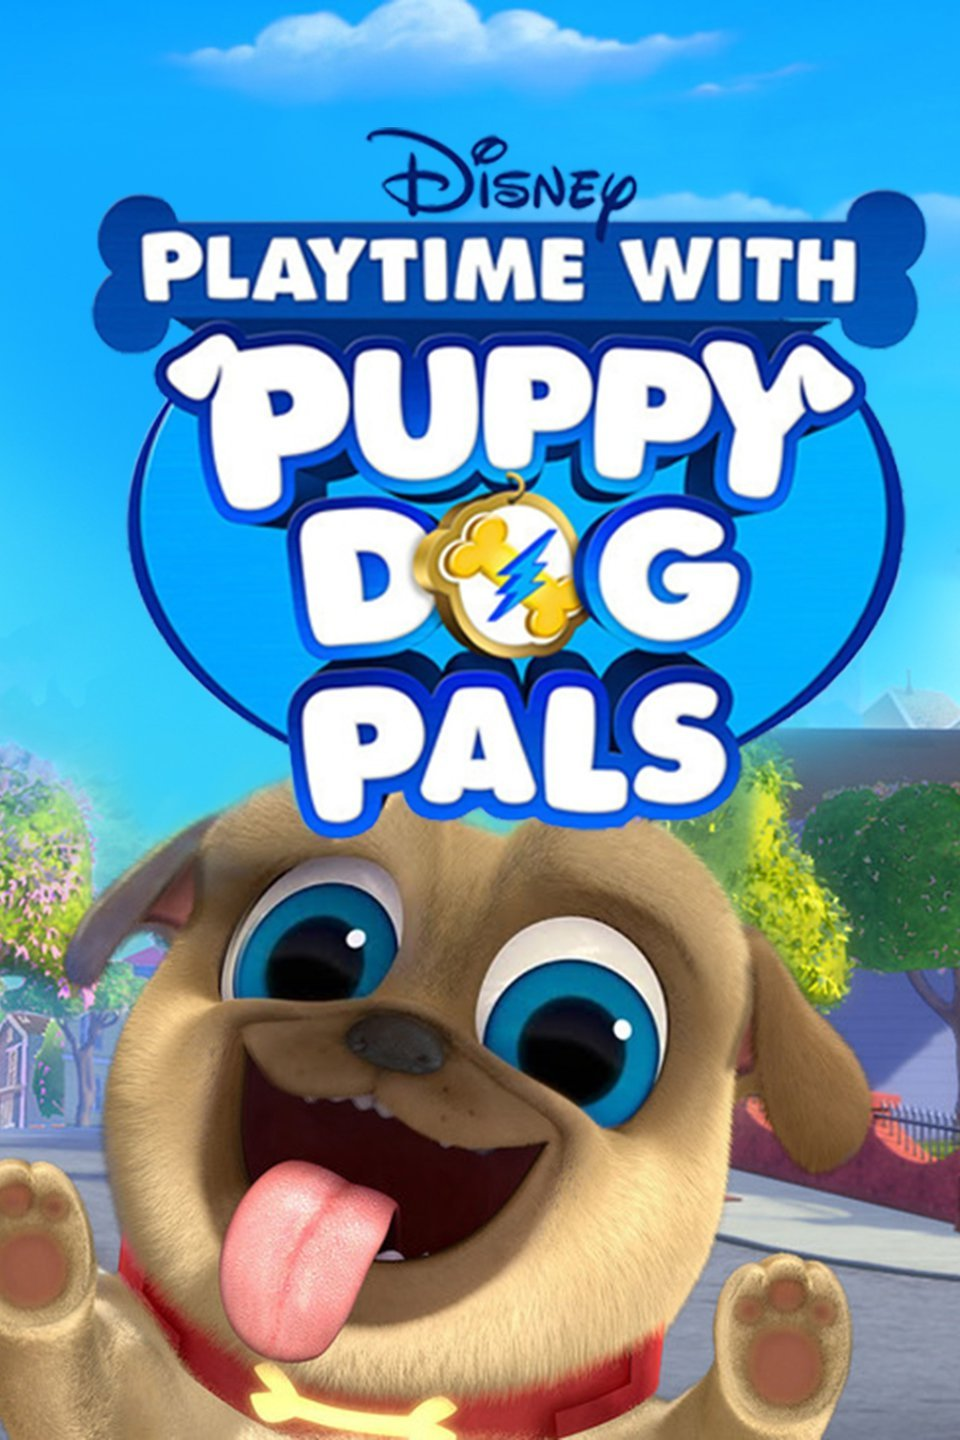 Playtime with Puppy Dog Pals